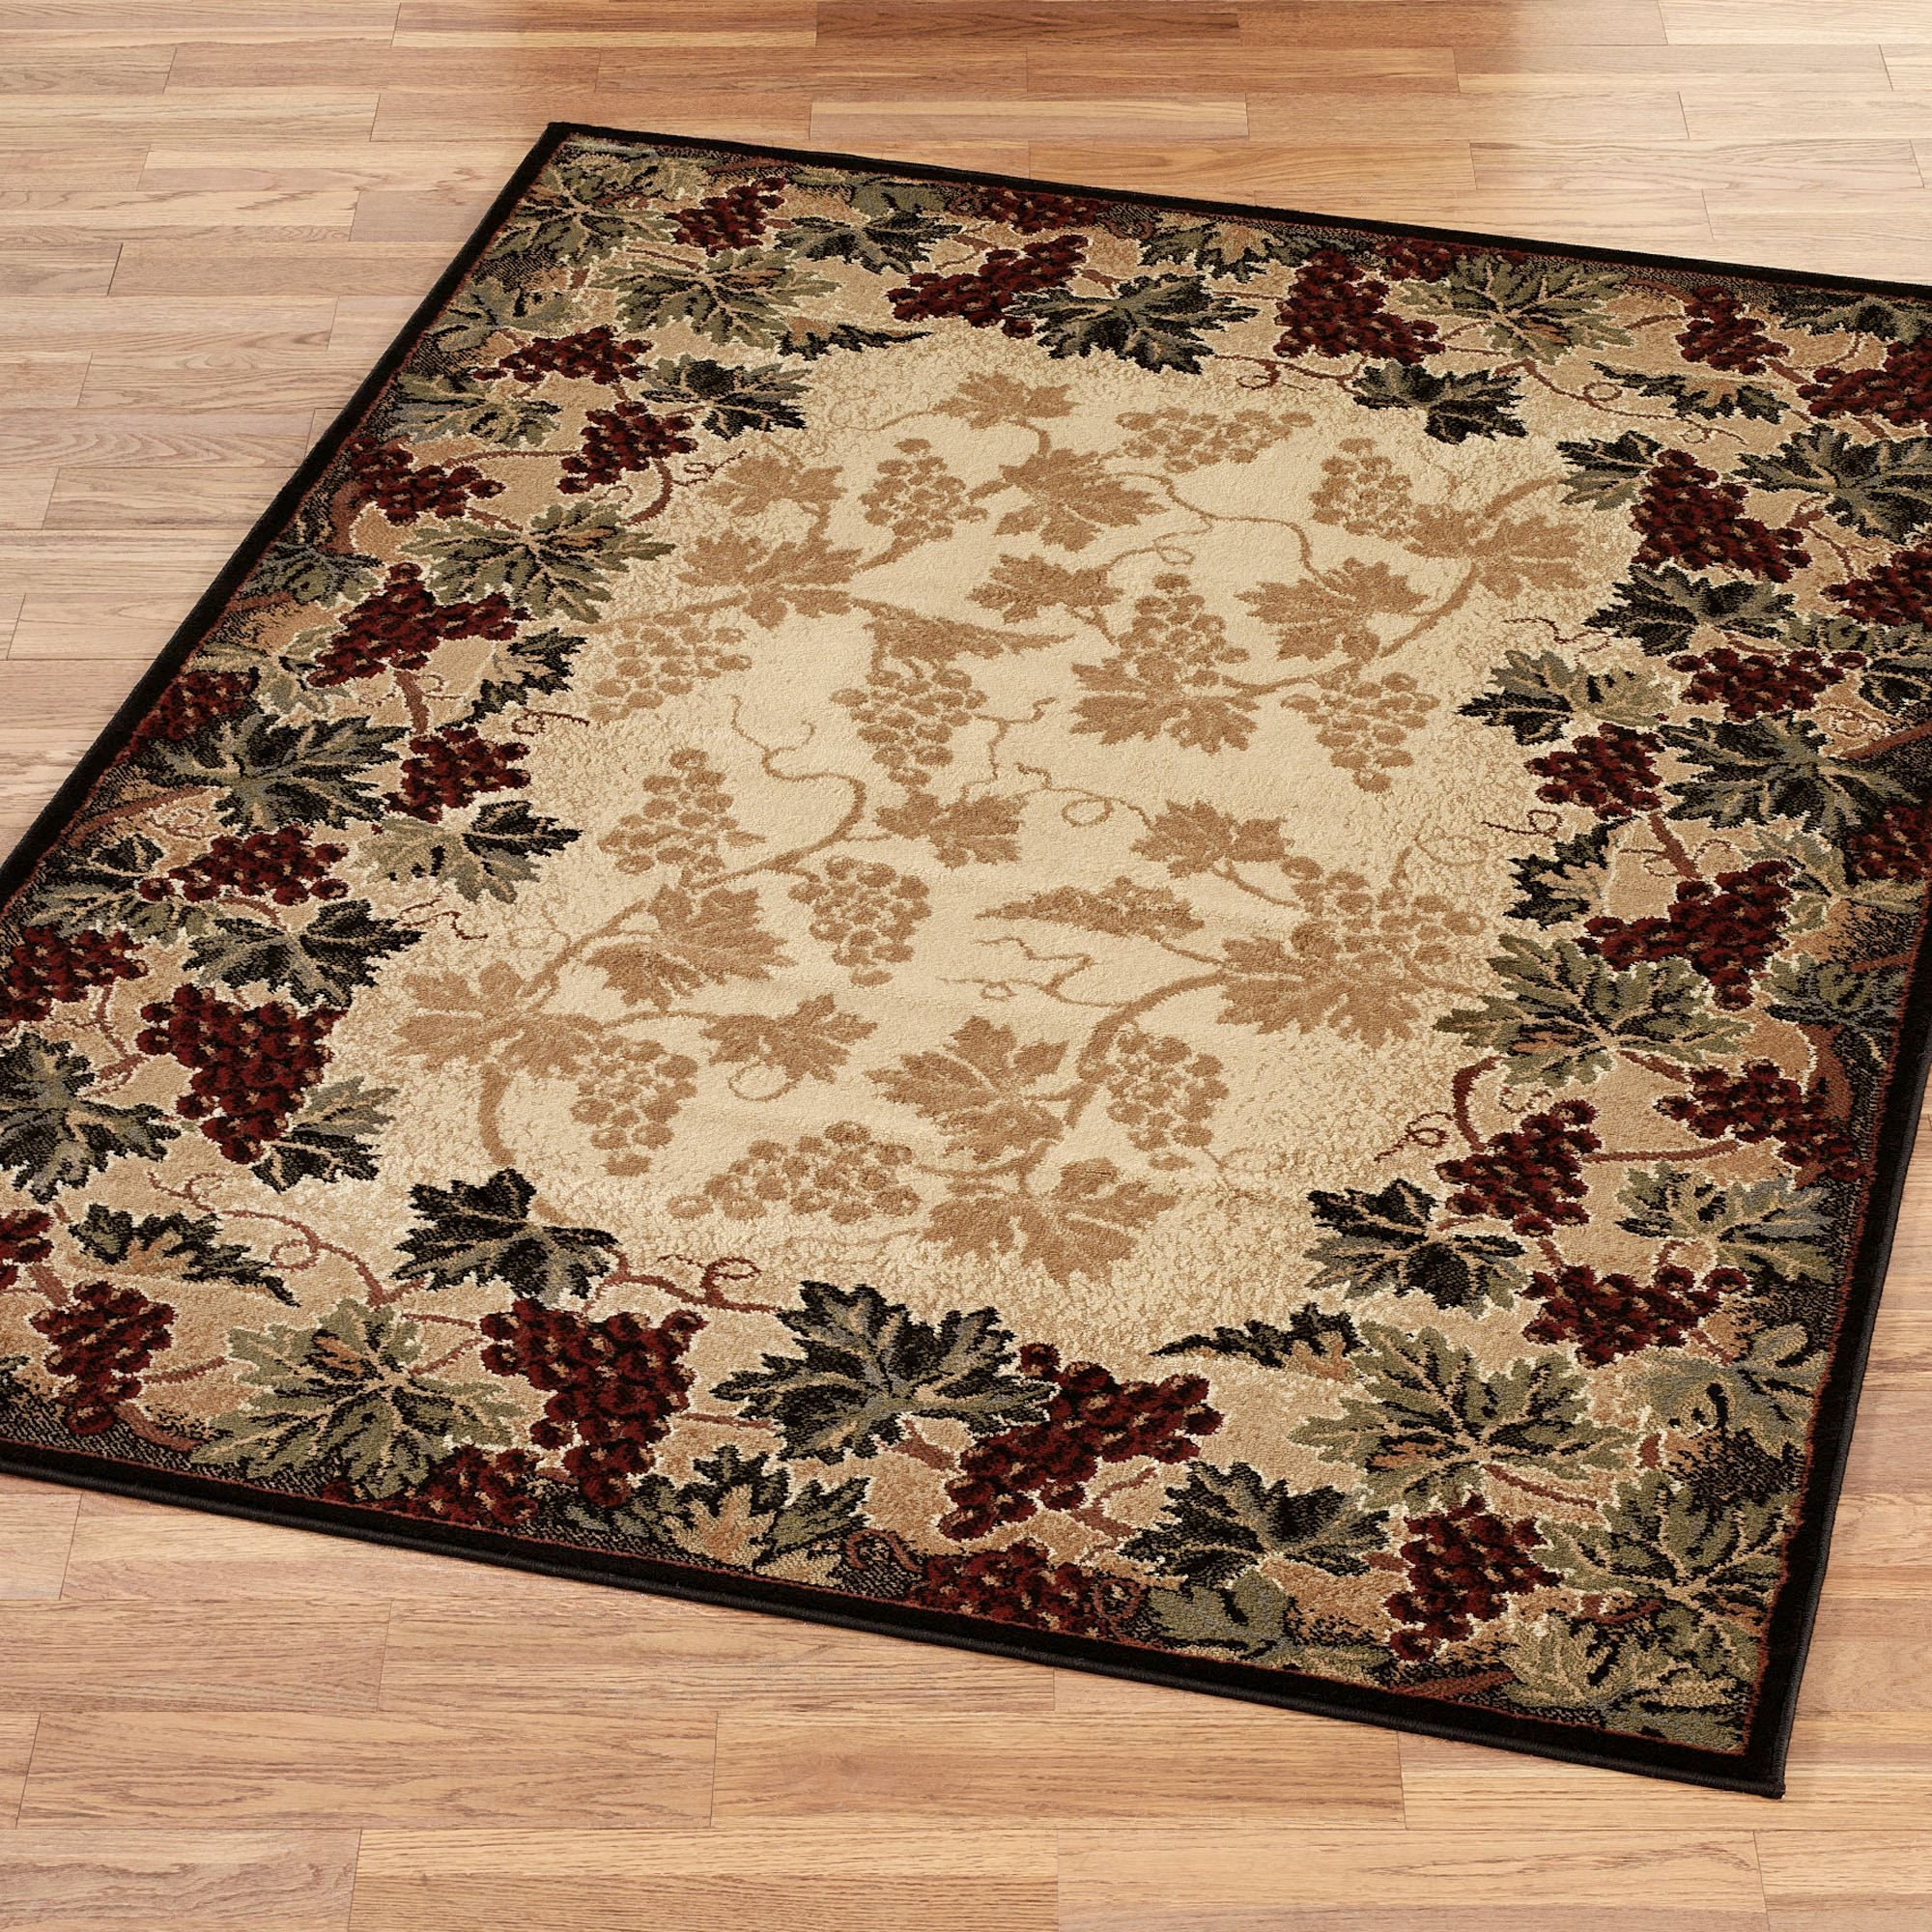 Beaujolais Ii Grape Area Rugs With Images Kitchen Decor Themes